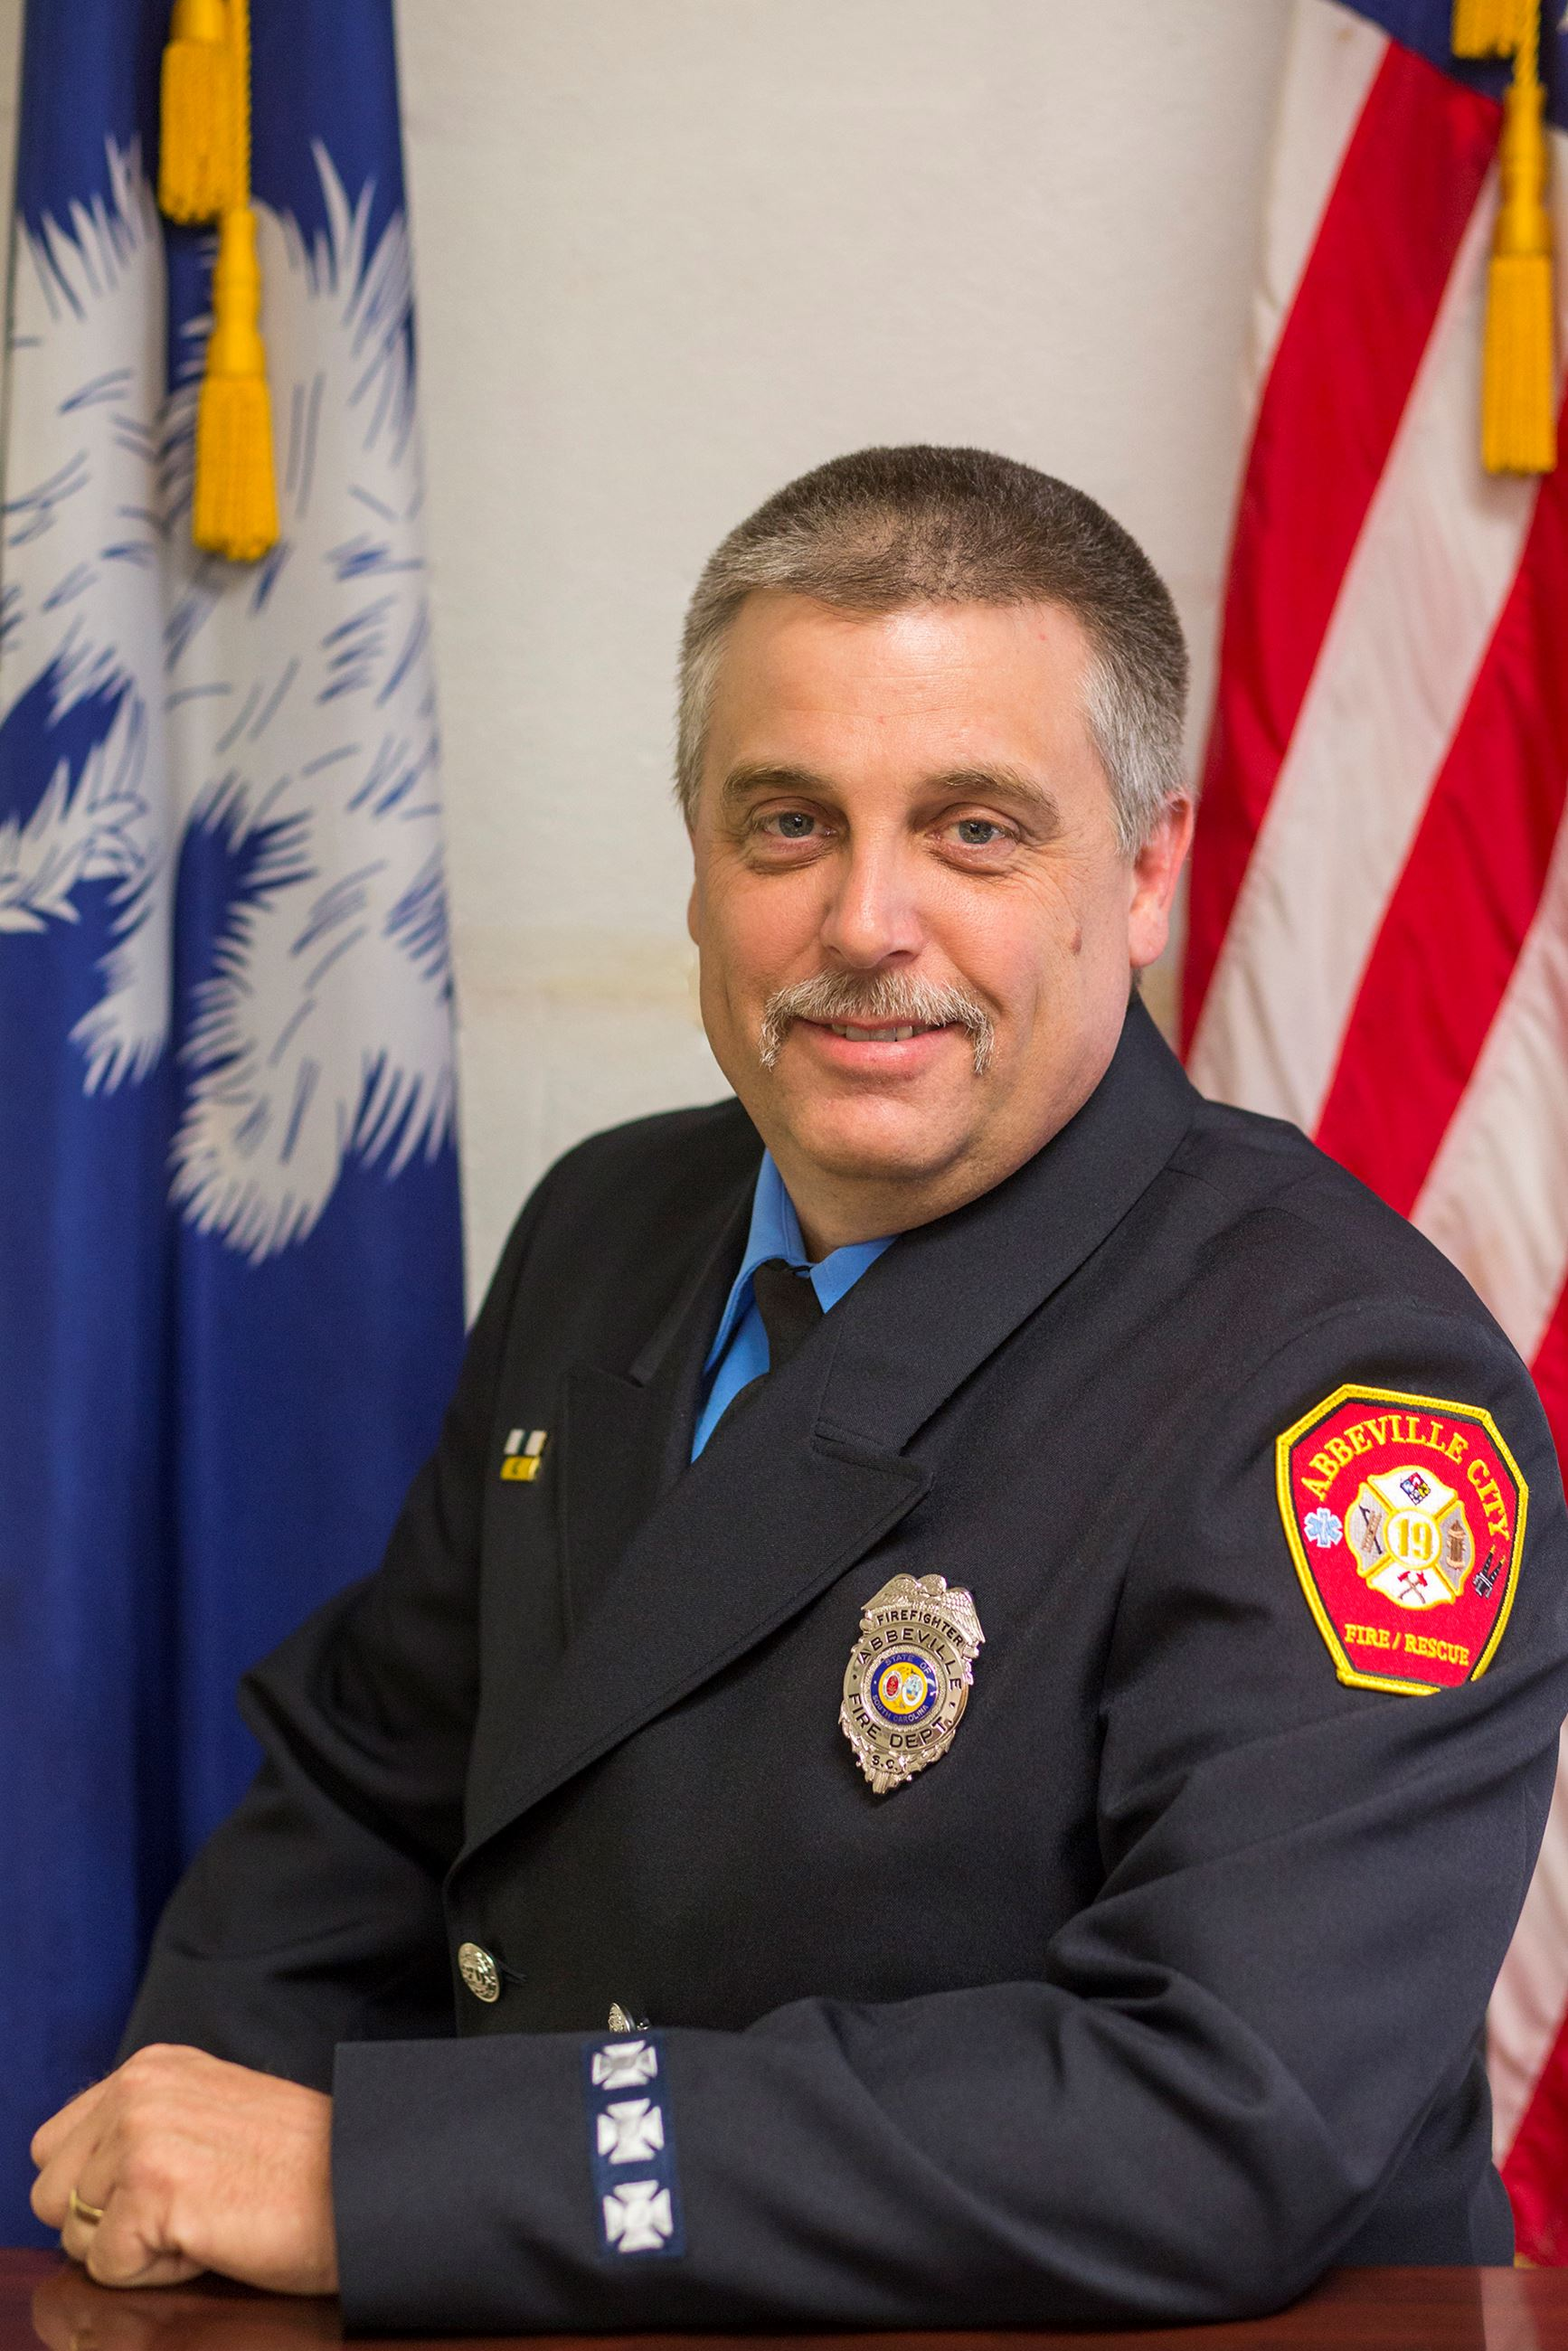 Senior Firefighter Mark Davis